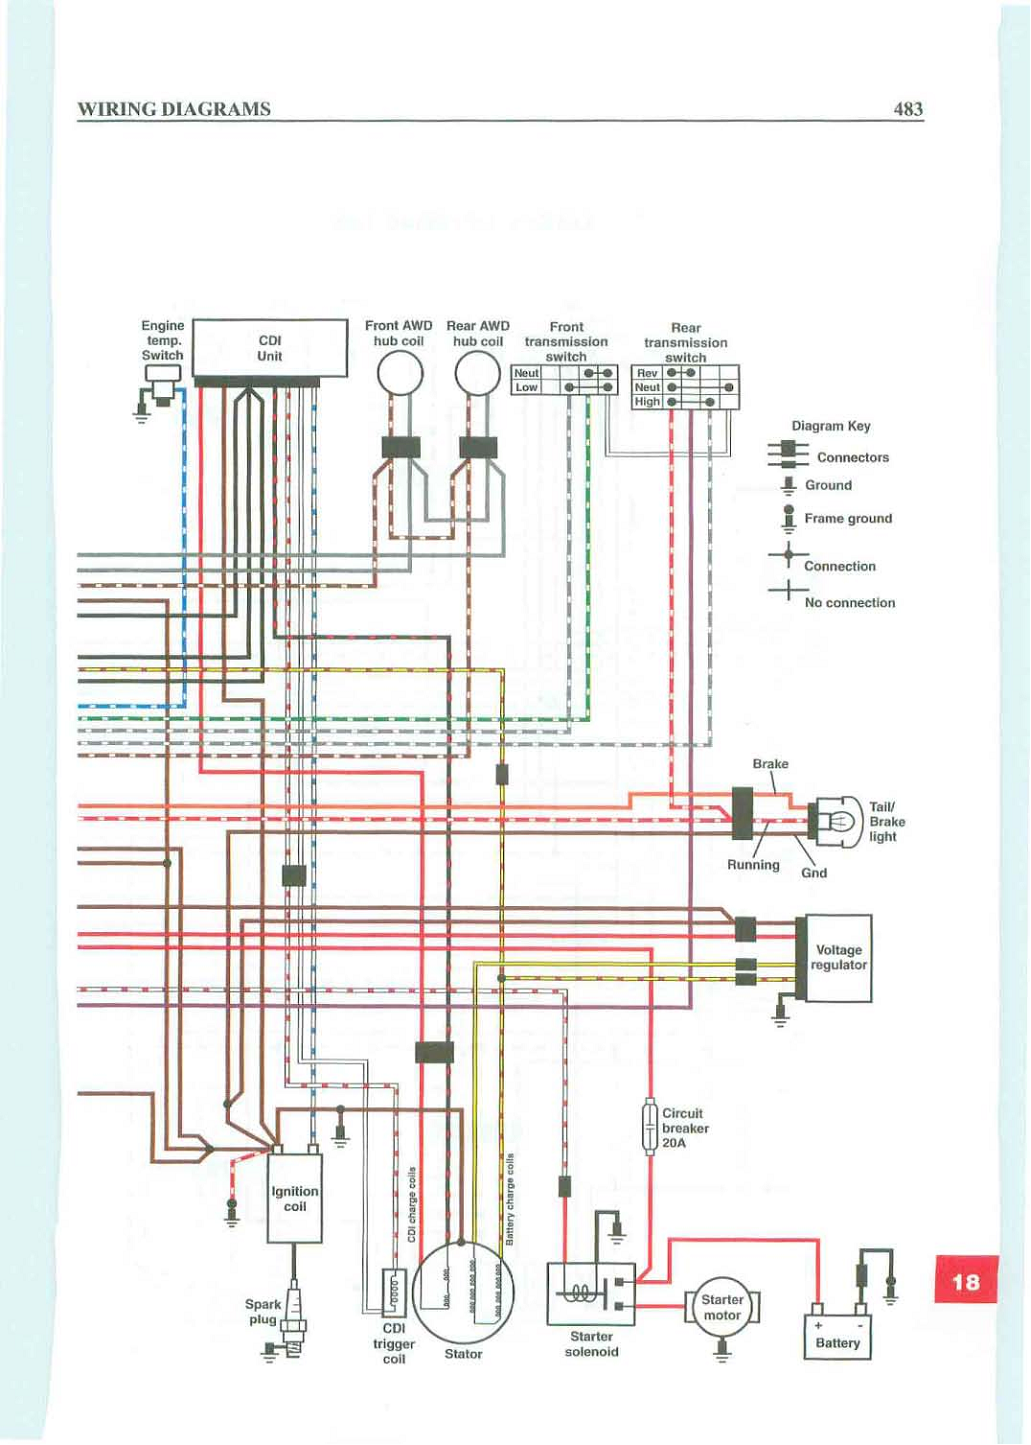 2017 polaris ranger crew wiring diagram images 2017 polaris wiring diagram for polaris ranger 2000 printable